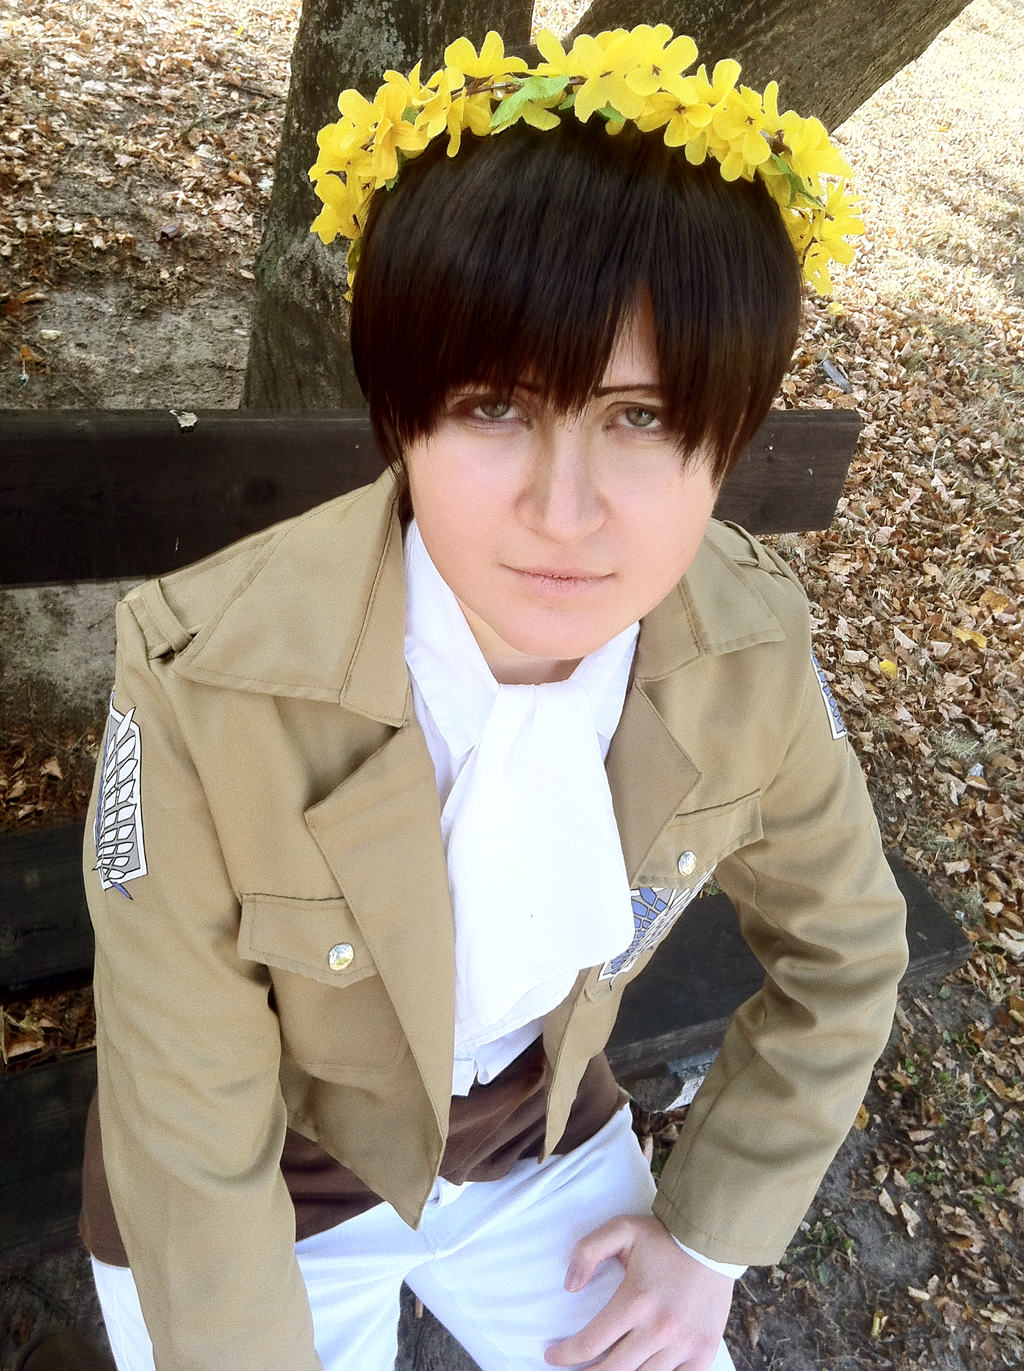 Gut bekannt SnK: Levi Ackerman cosplay 3 by themuffinshota on DeviantArt CT55